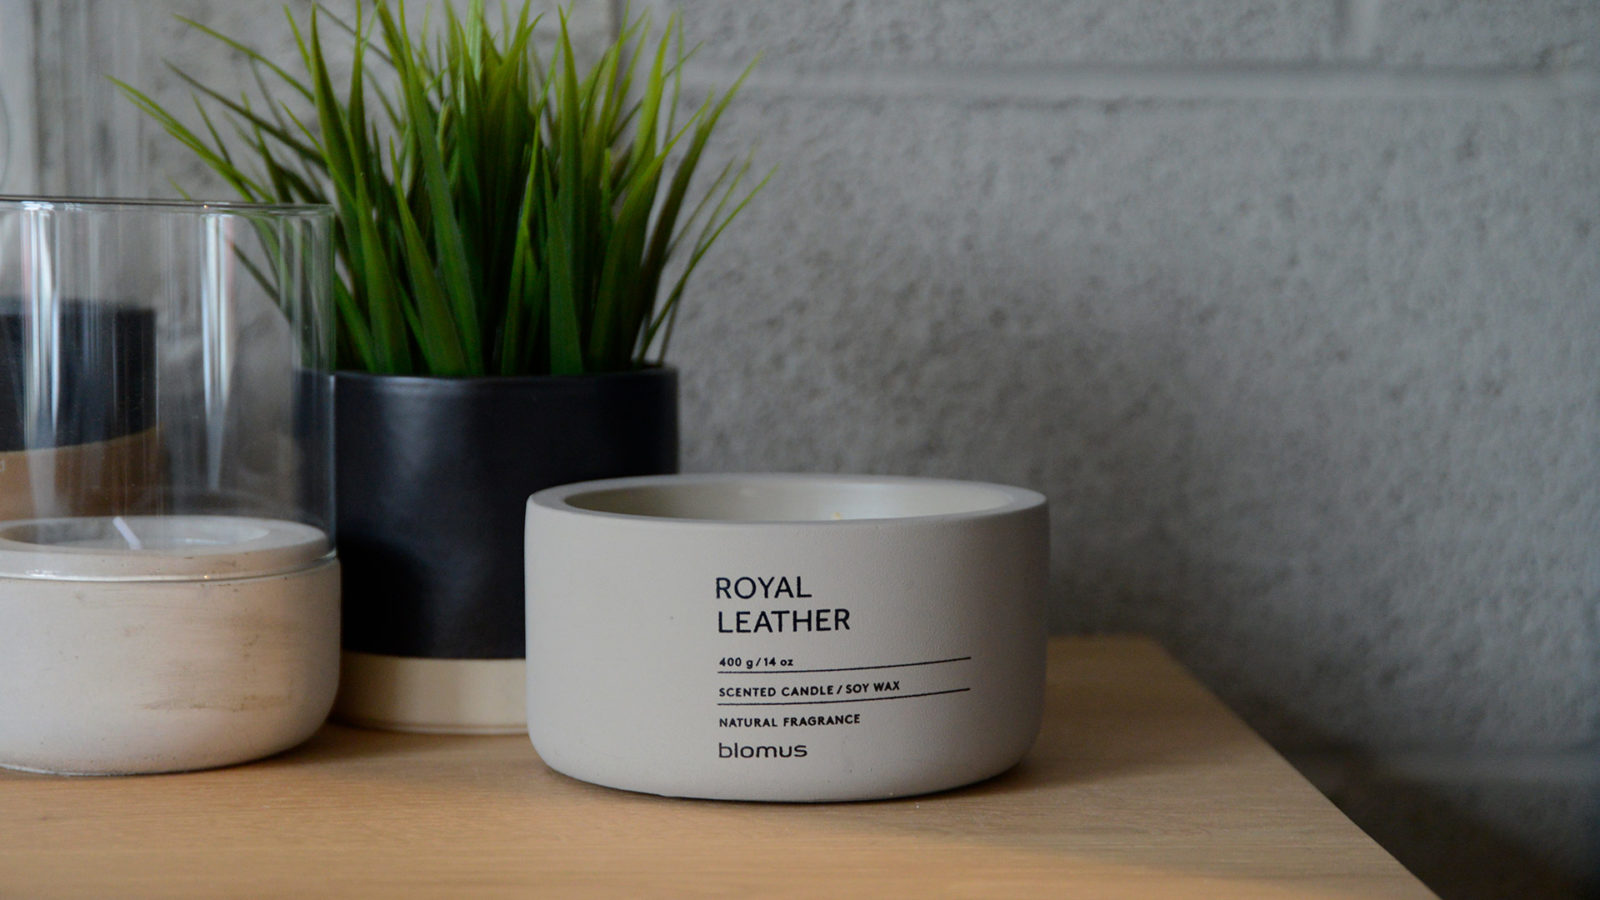 royal leather scented candle